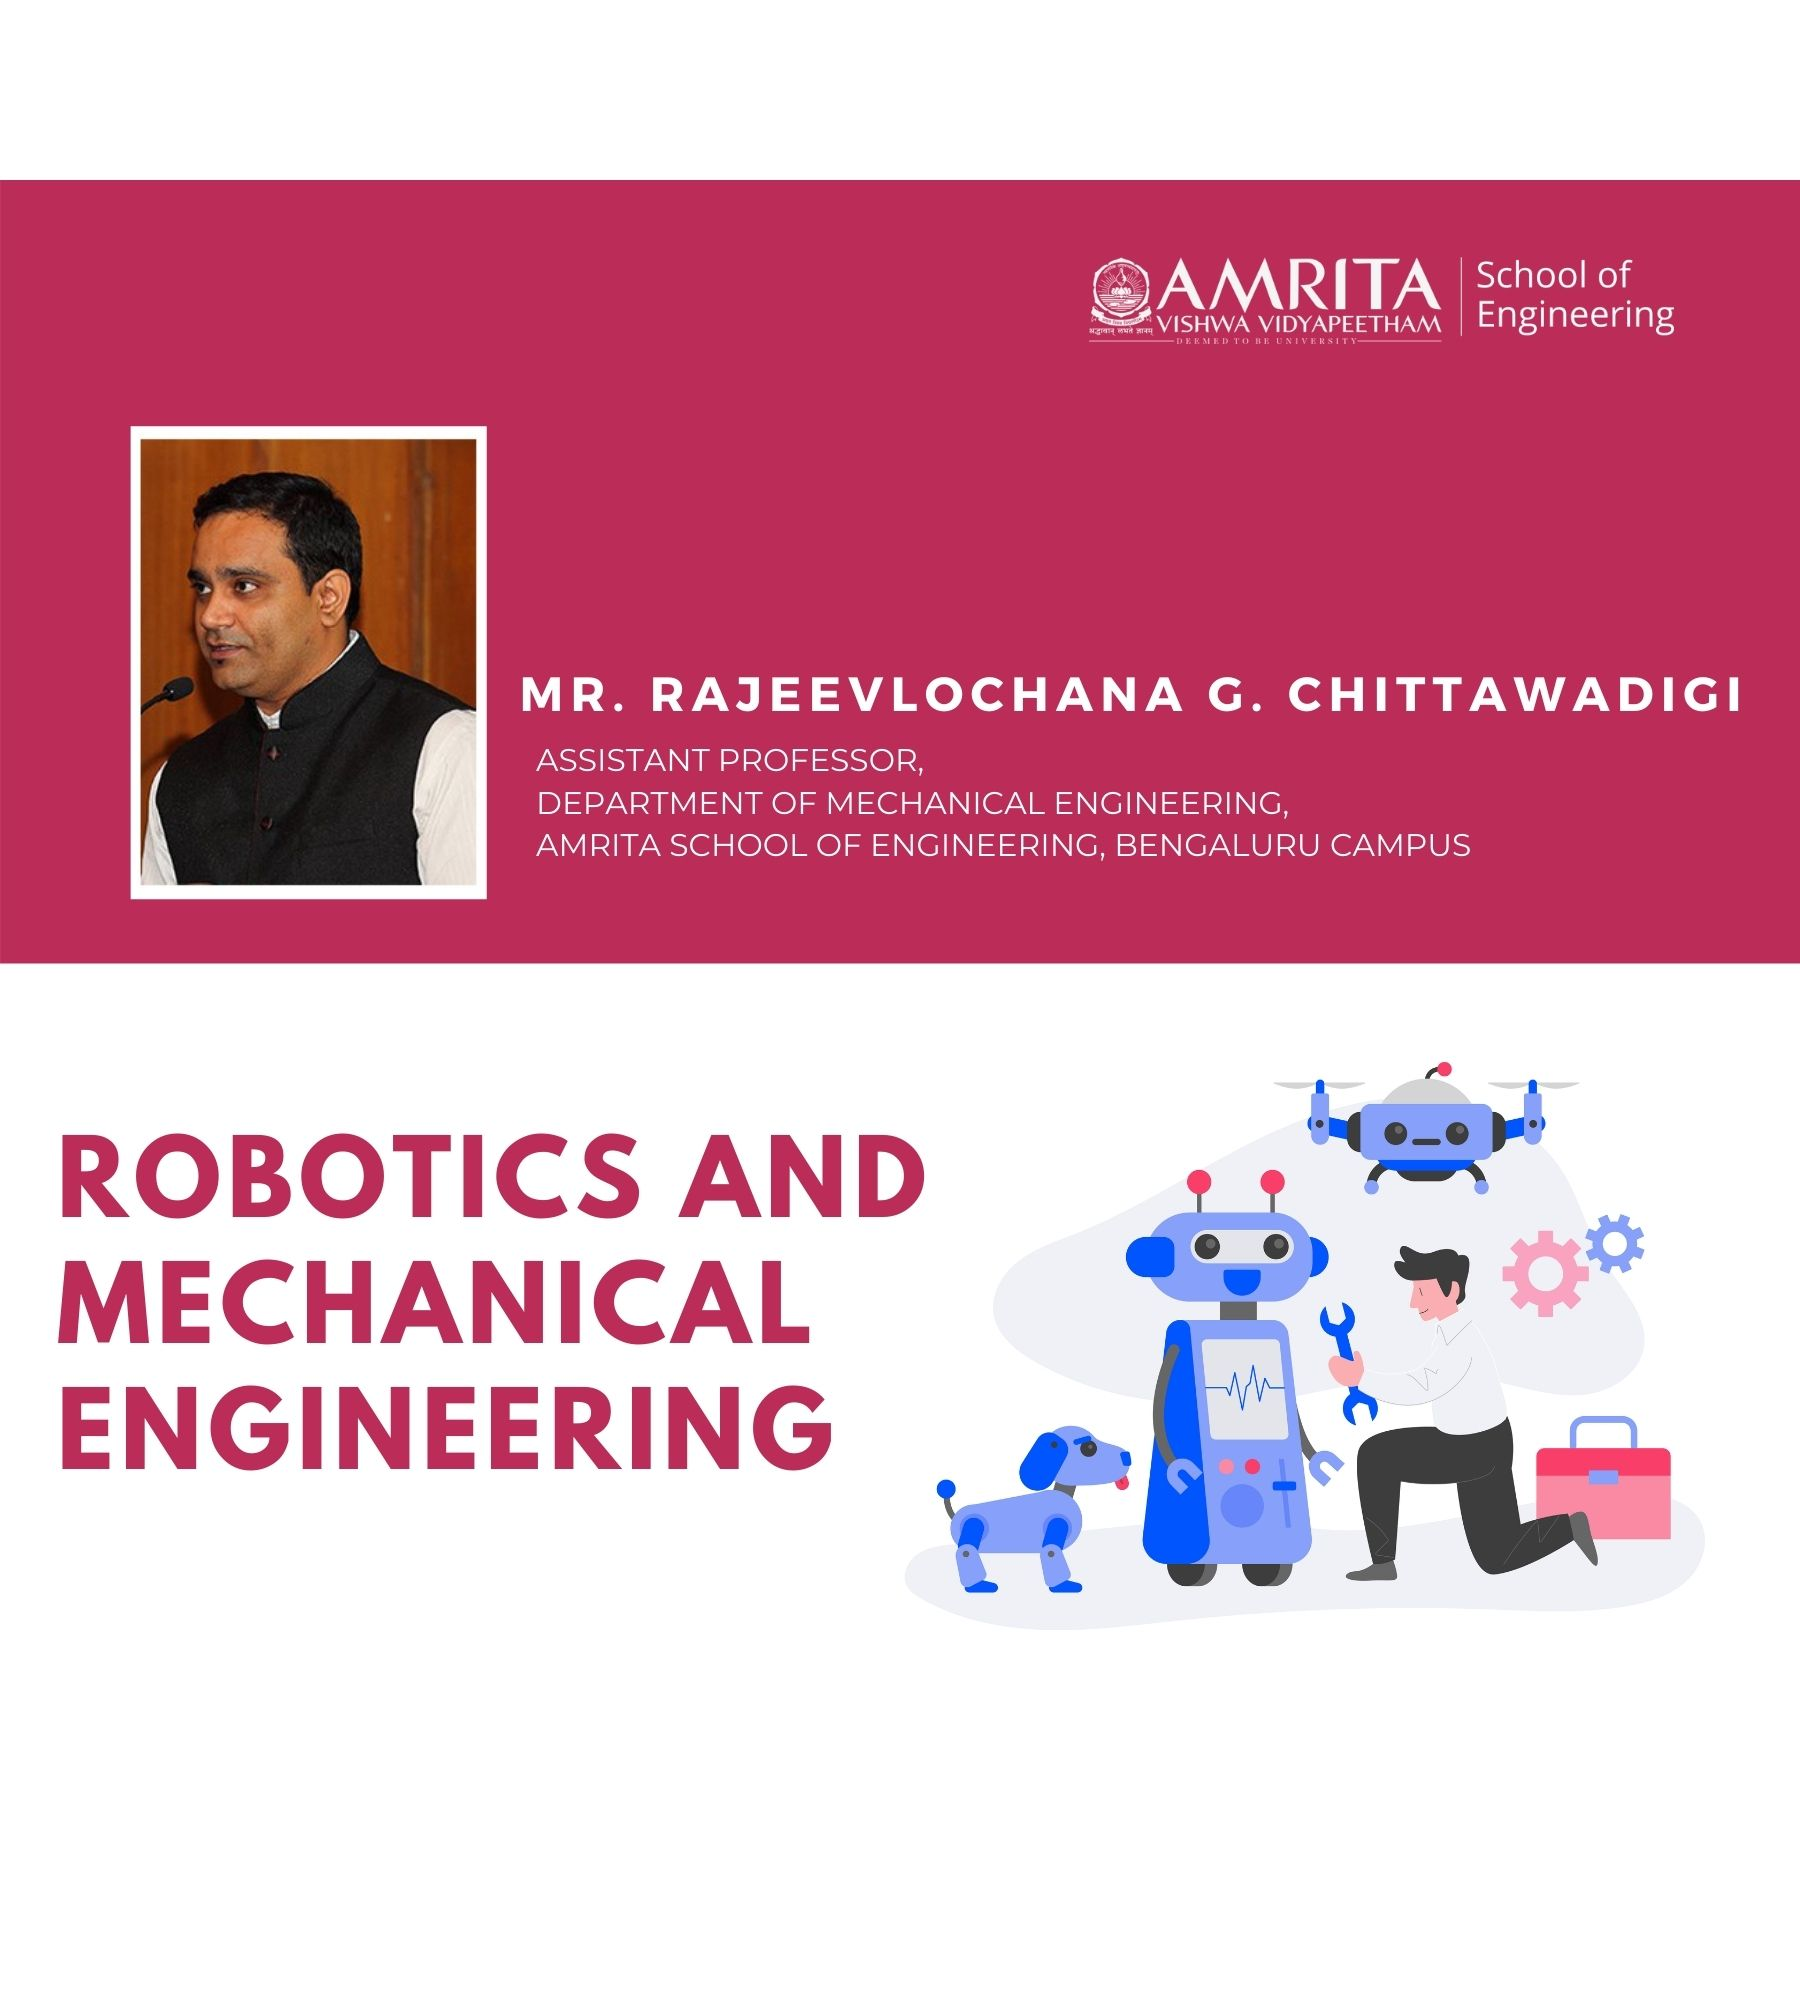 Webinar on Robotics and Mechanical Engineering - Mr. Rajeevlochana G. Chittawadigi